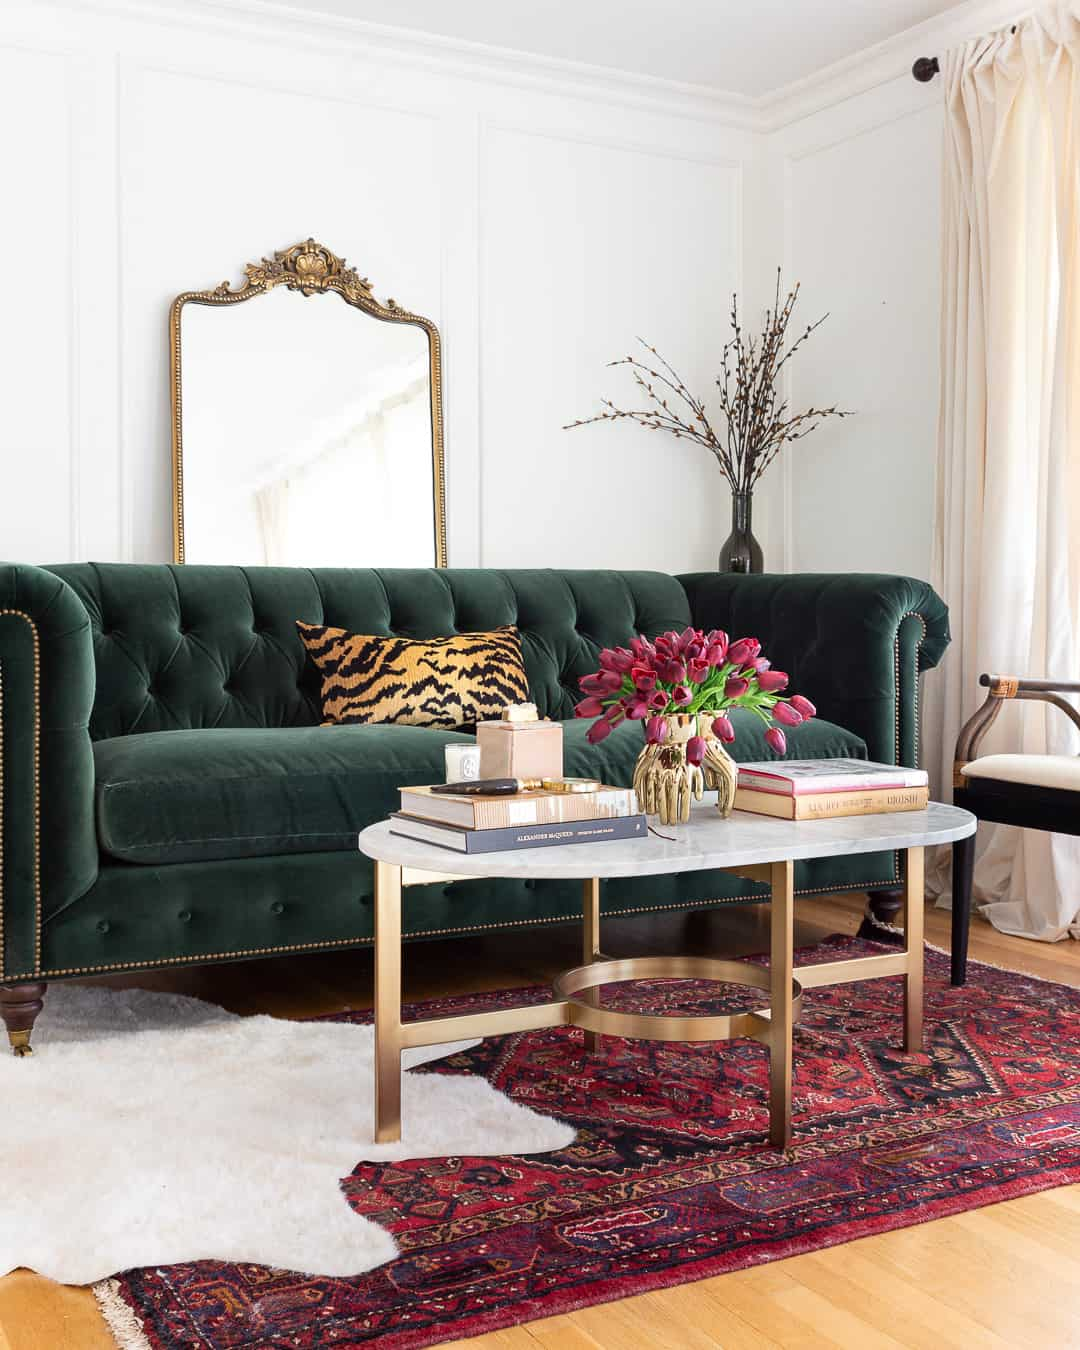 All About Molding: The Guaranteed Way to Create a Drop-Dead-Gorgeous Room